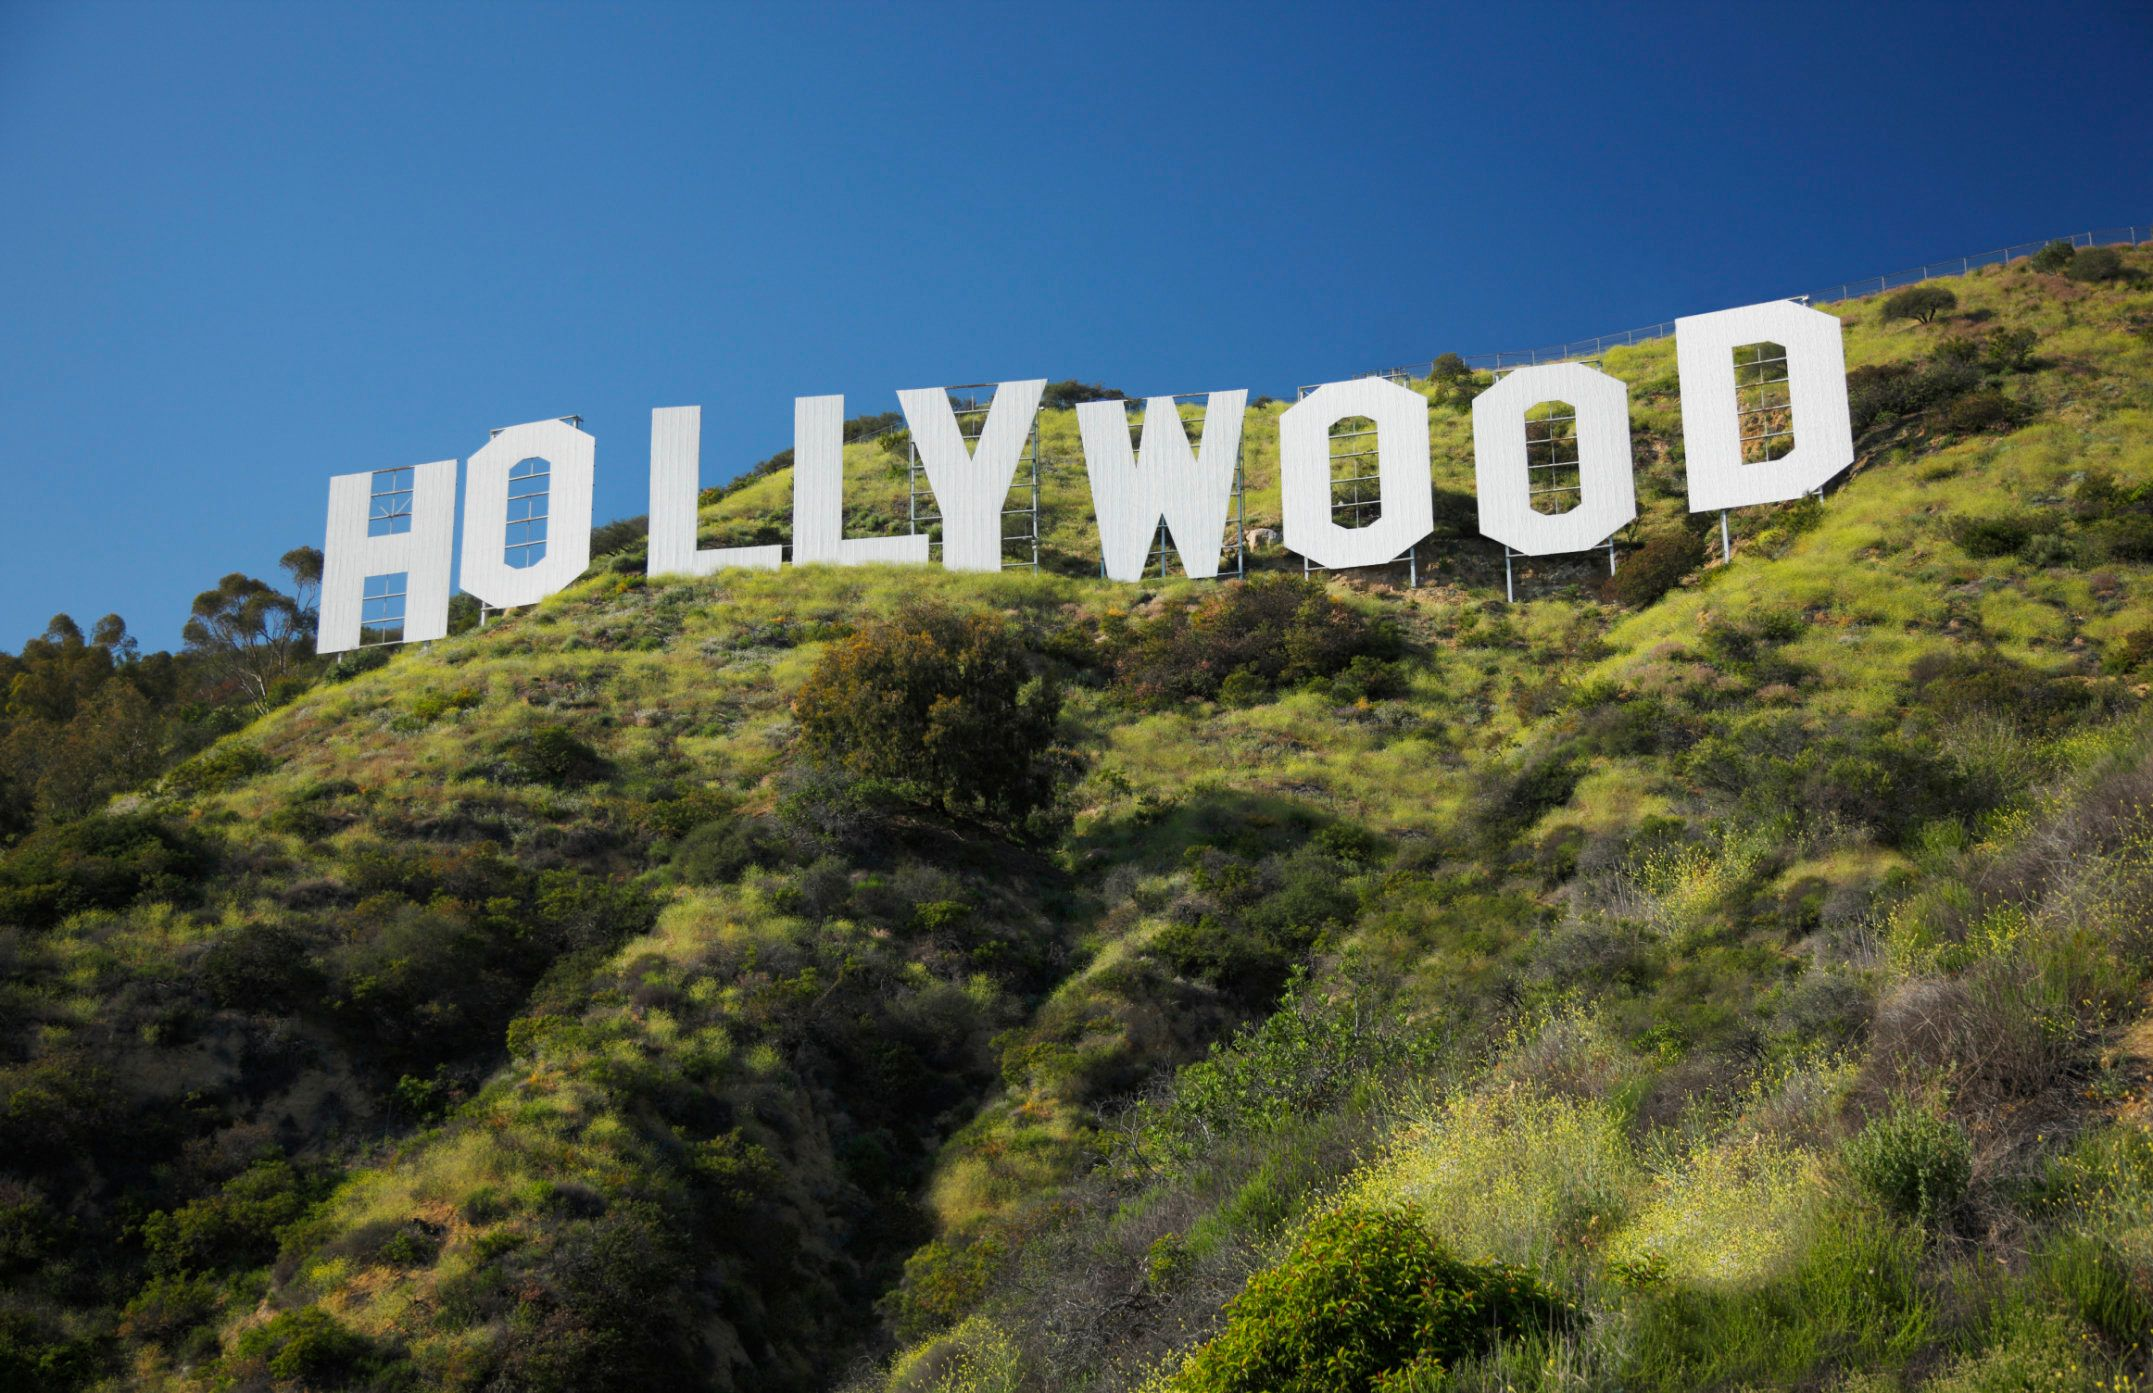 For the second time in four years, a human skull has been found by hikers near Los Angeles' iconic Hollywood sign.